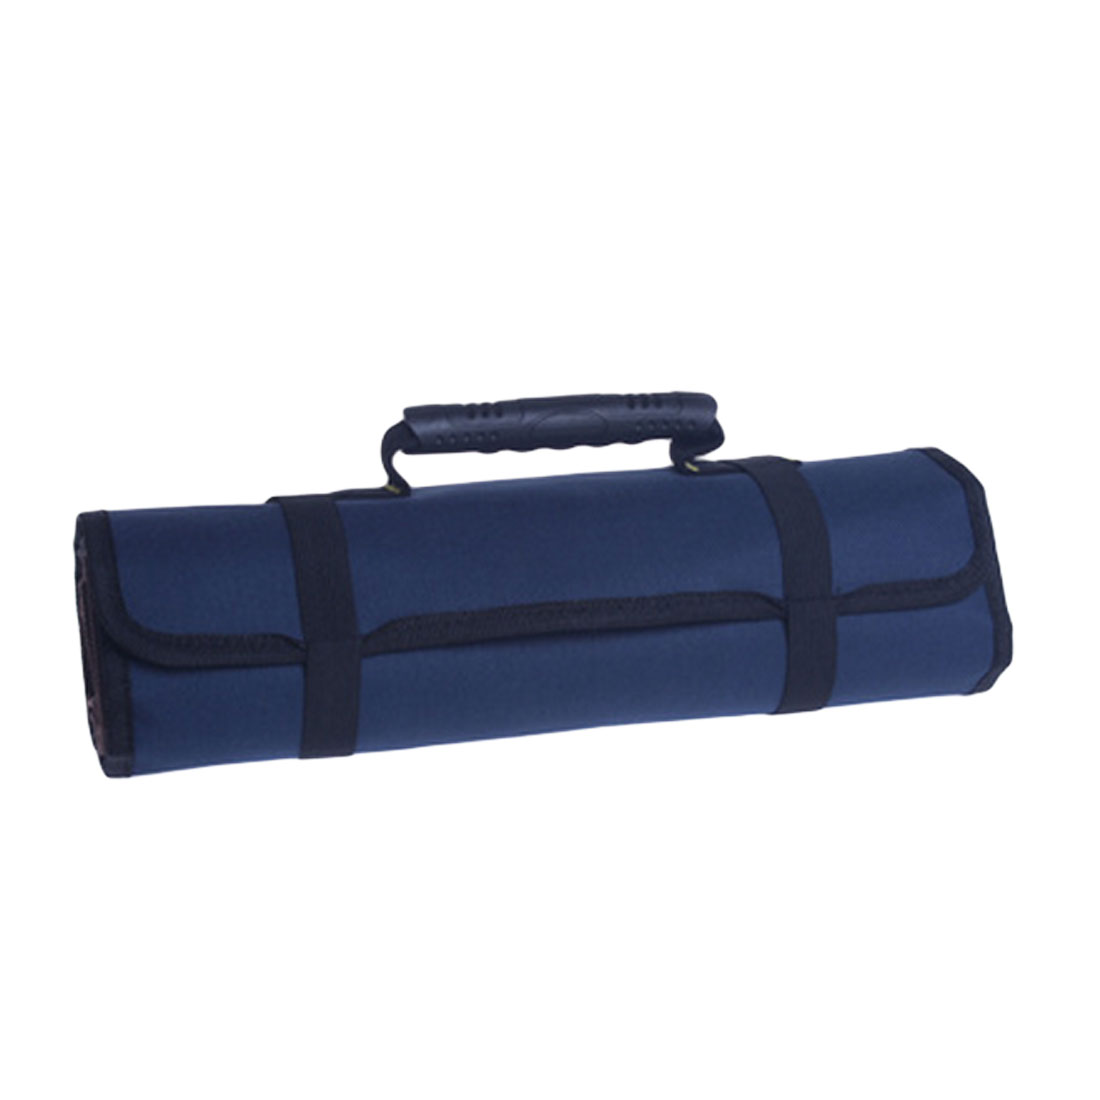 Repairing Tool Utility Tool Bag Multifunctional Oxford Canvas Chisel Roll Rolling Practical with Carrying HandlesRepairing Tool Utility Tool Bag Multifunctional Oxford Canvas Chisel Roll Rolling Practical with Carrying Handles